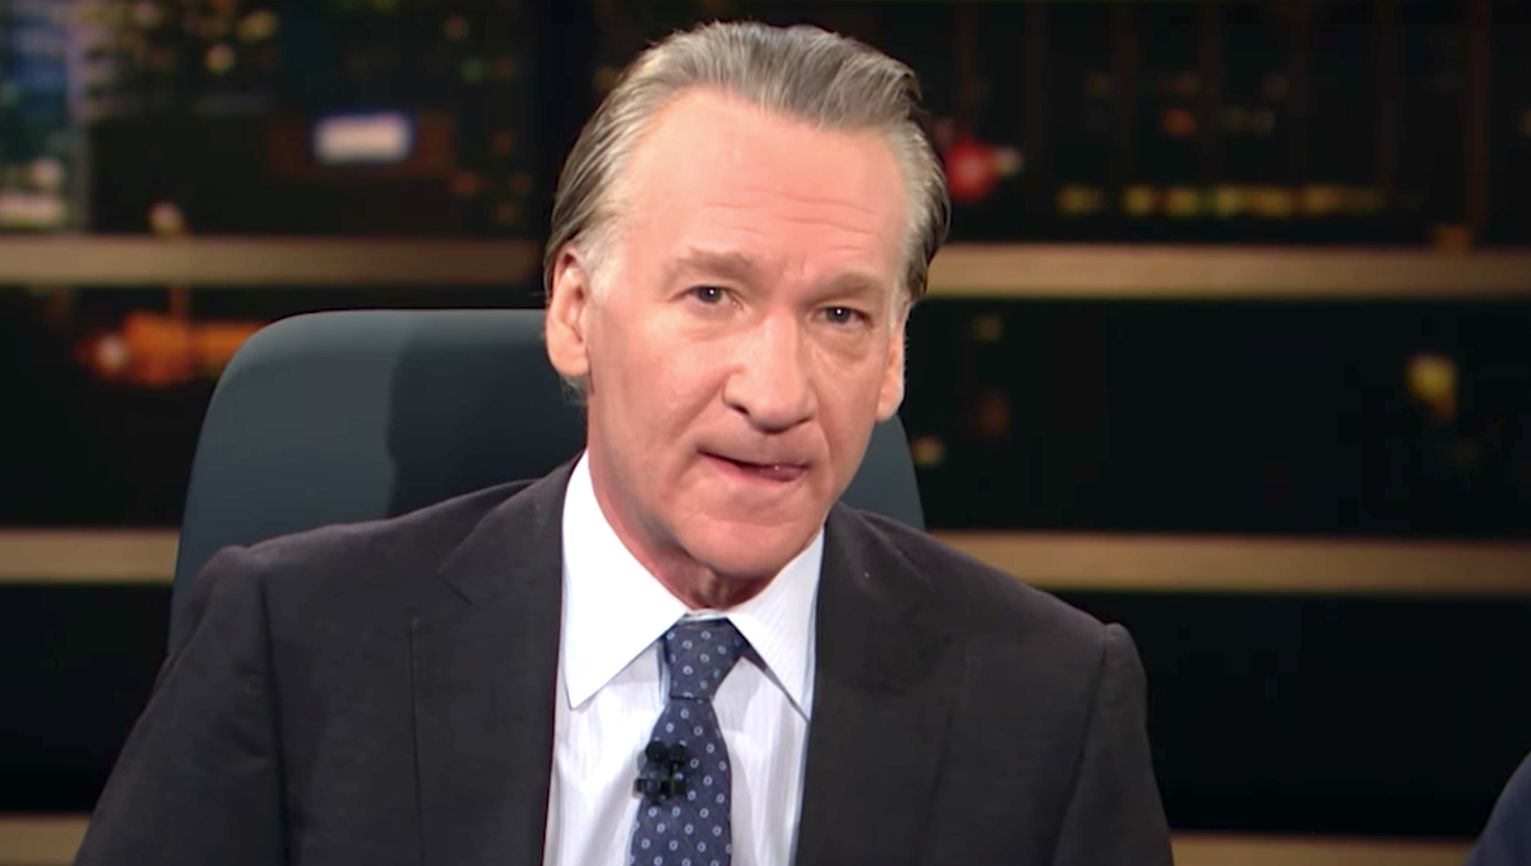 Bill Maher Delivers Blistering Critique Of Democrats' Political Courage